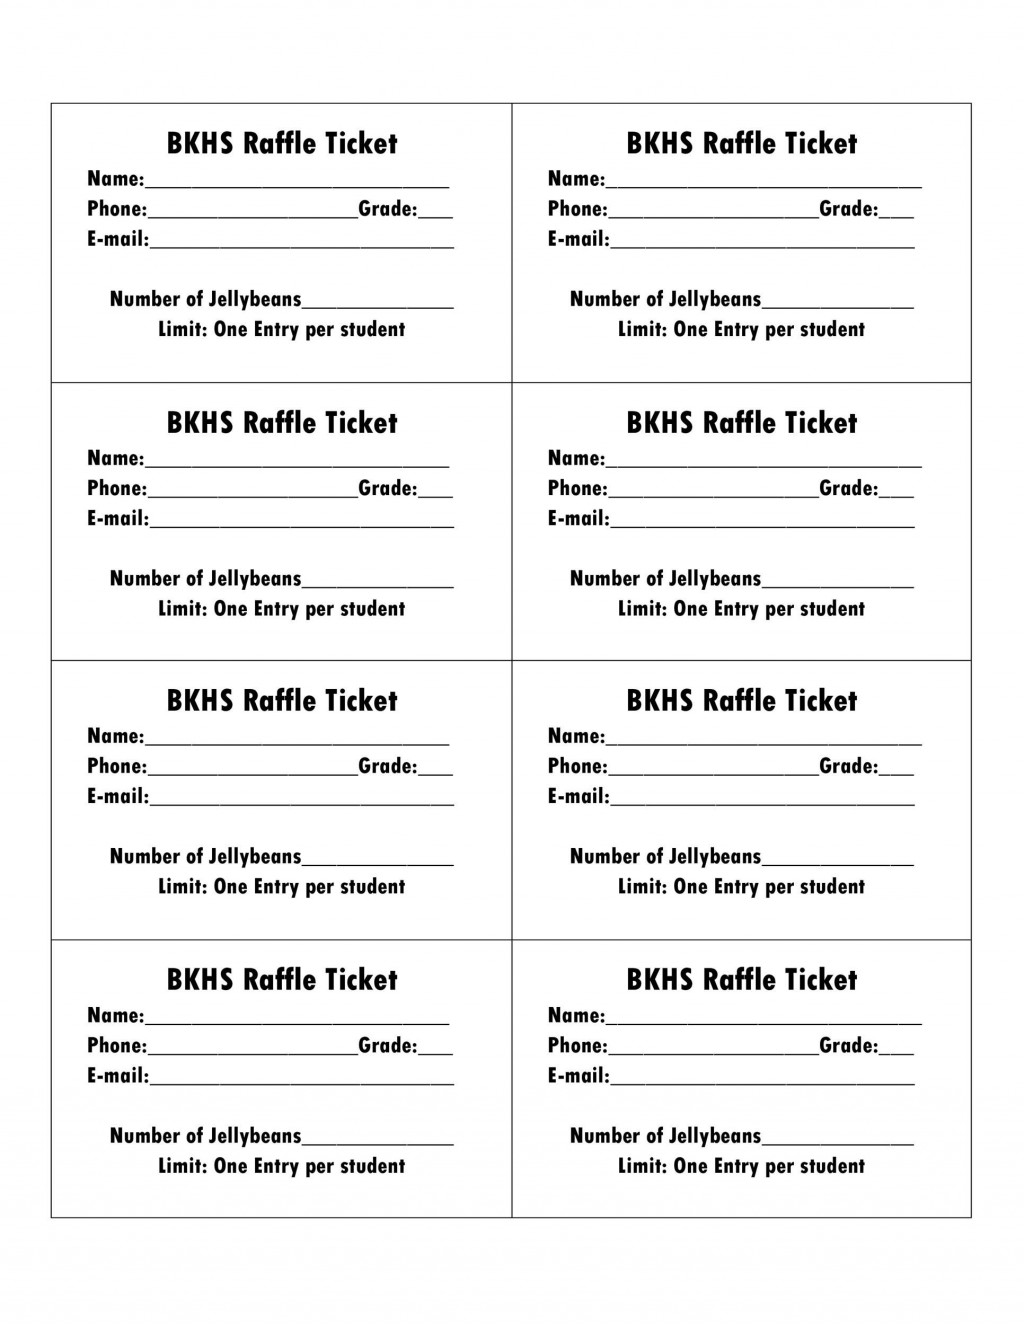 008 Remarkable Free Printable Ticket Template Design  Raffle Printing Airline For Gift ConcertLarge